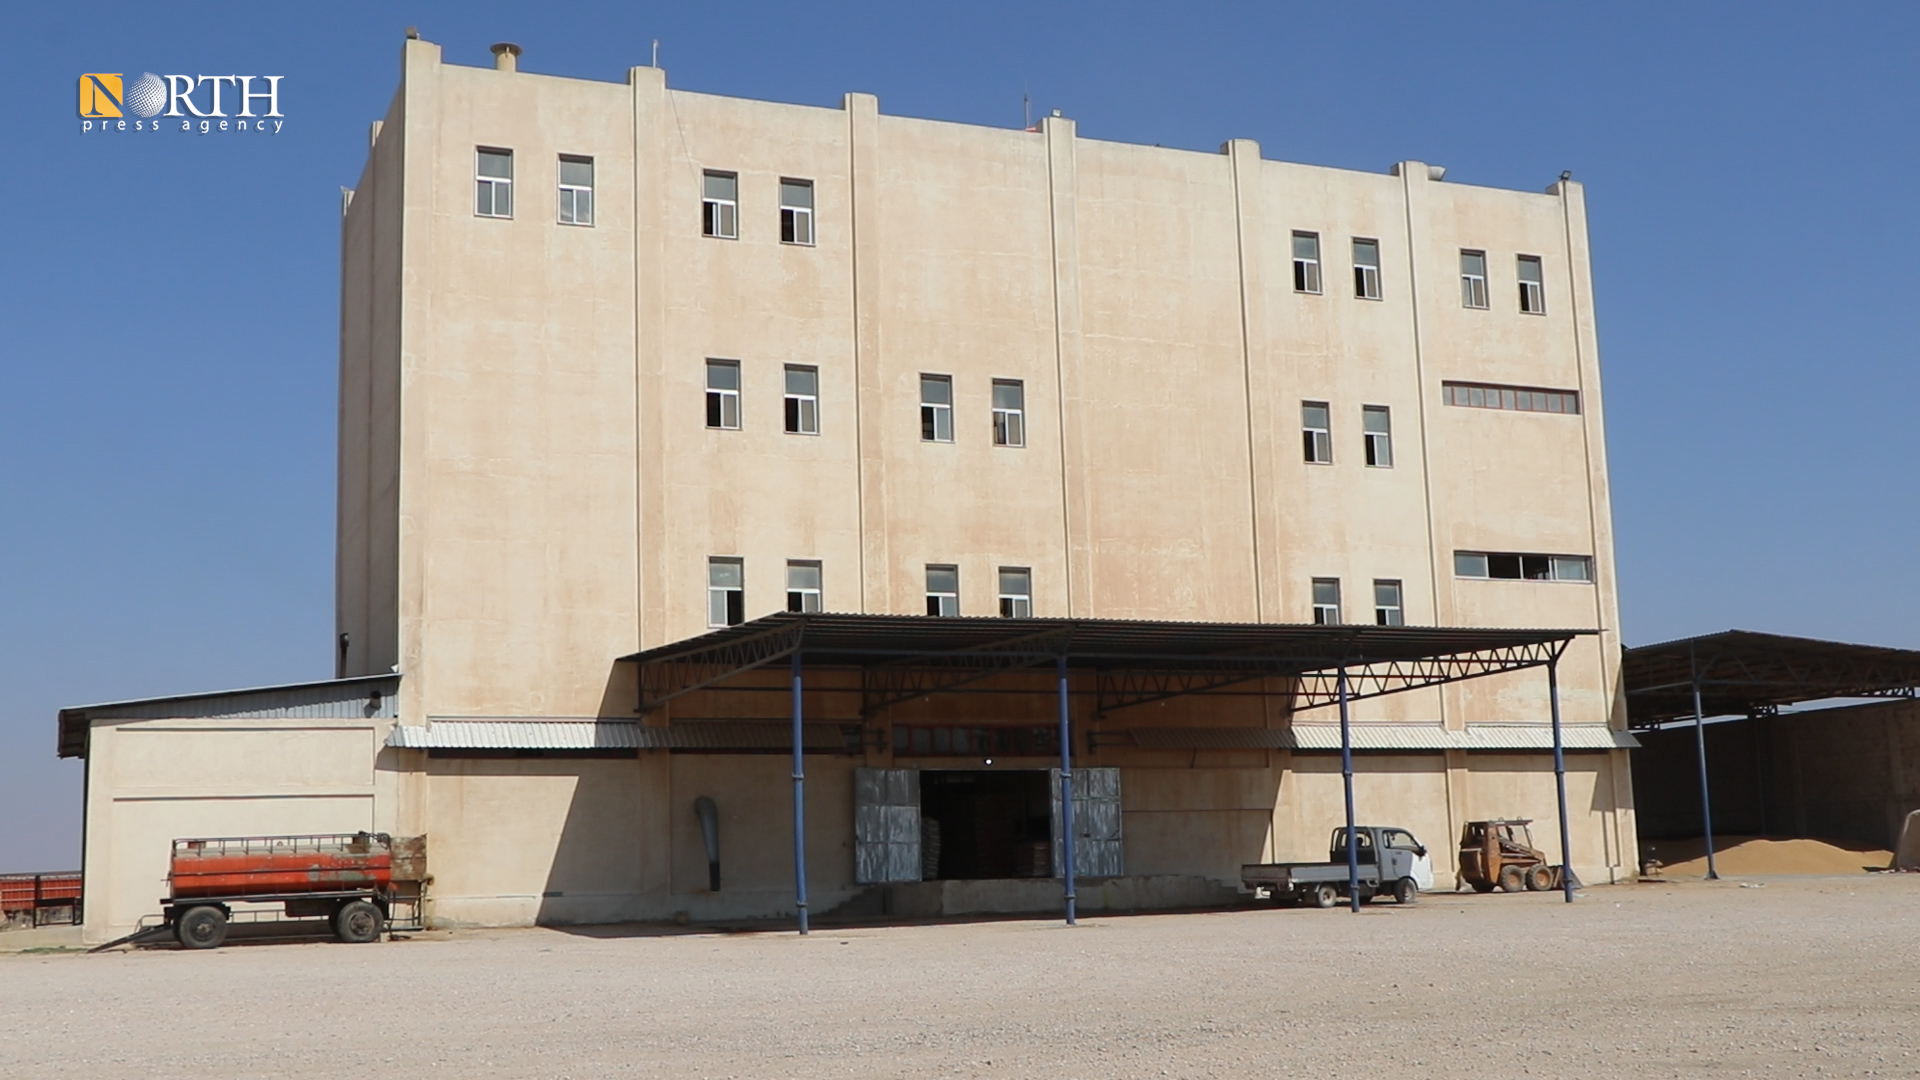 Qamishli, Judi factory for producing bulgur - North Press